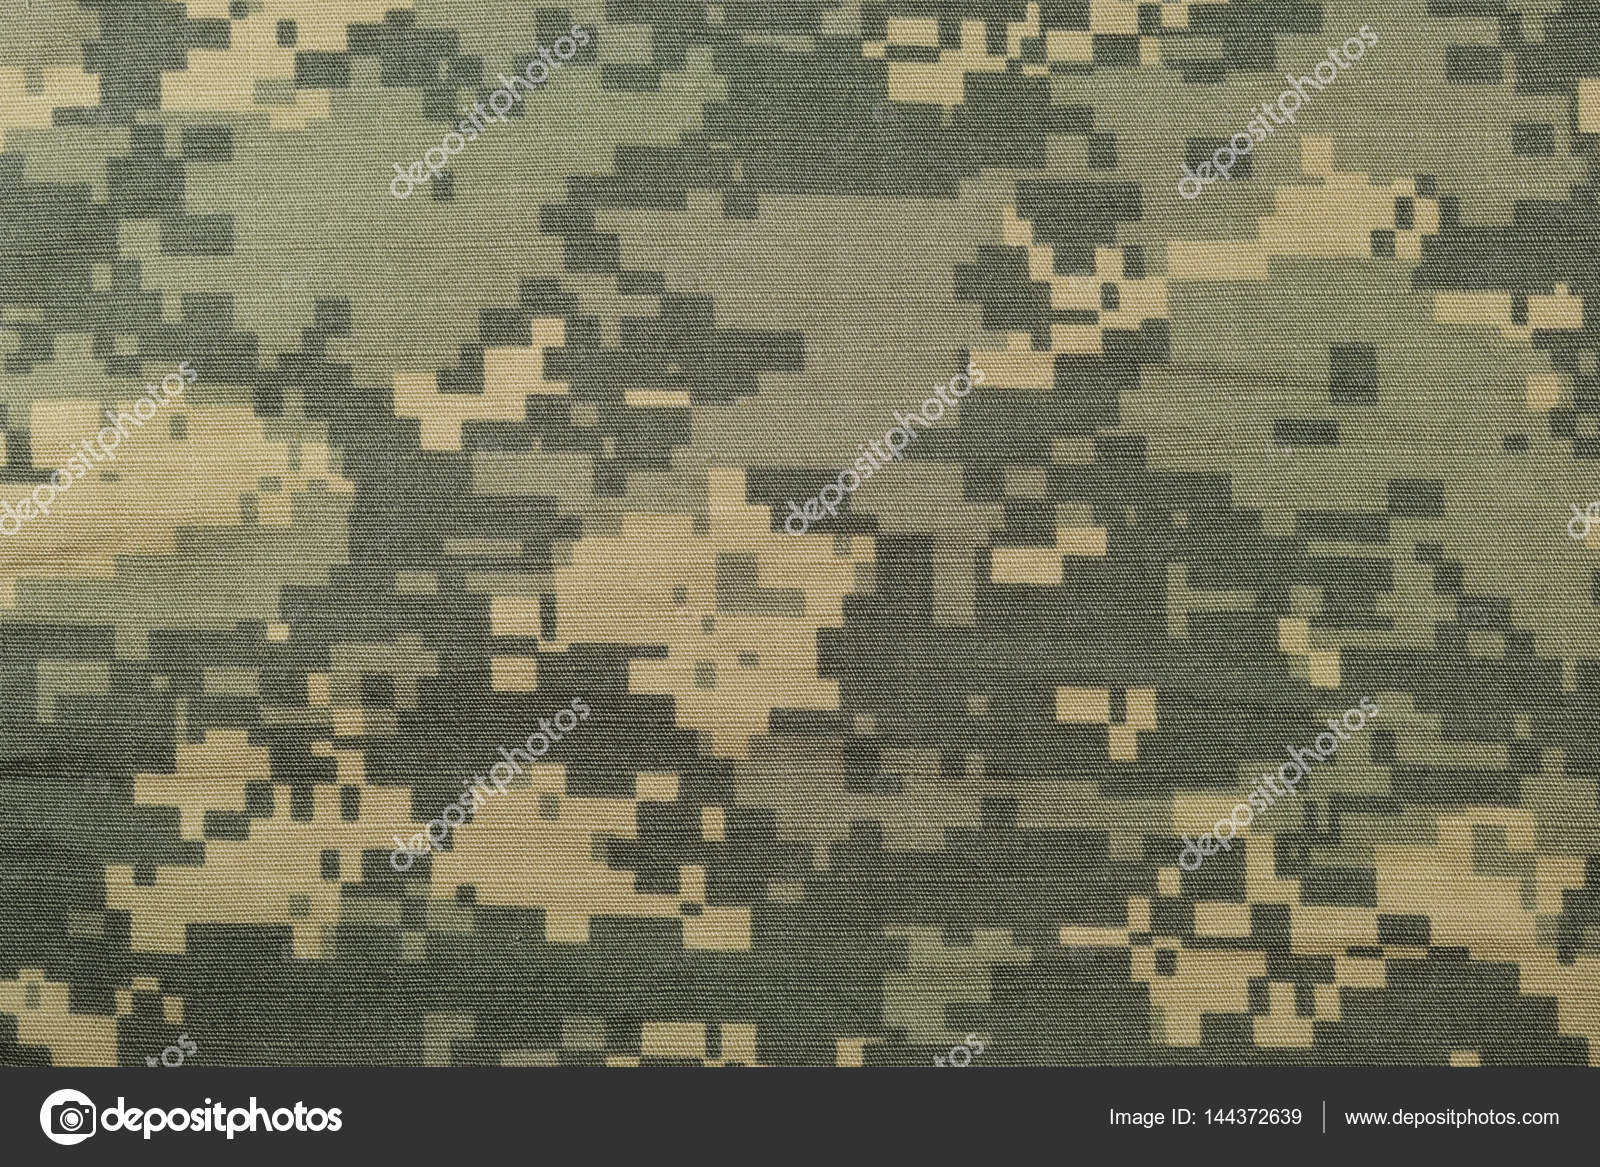 Universal camouflage pattern, army combat uniform digital ...